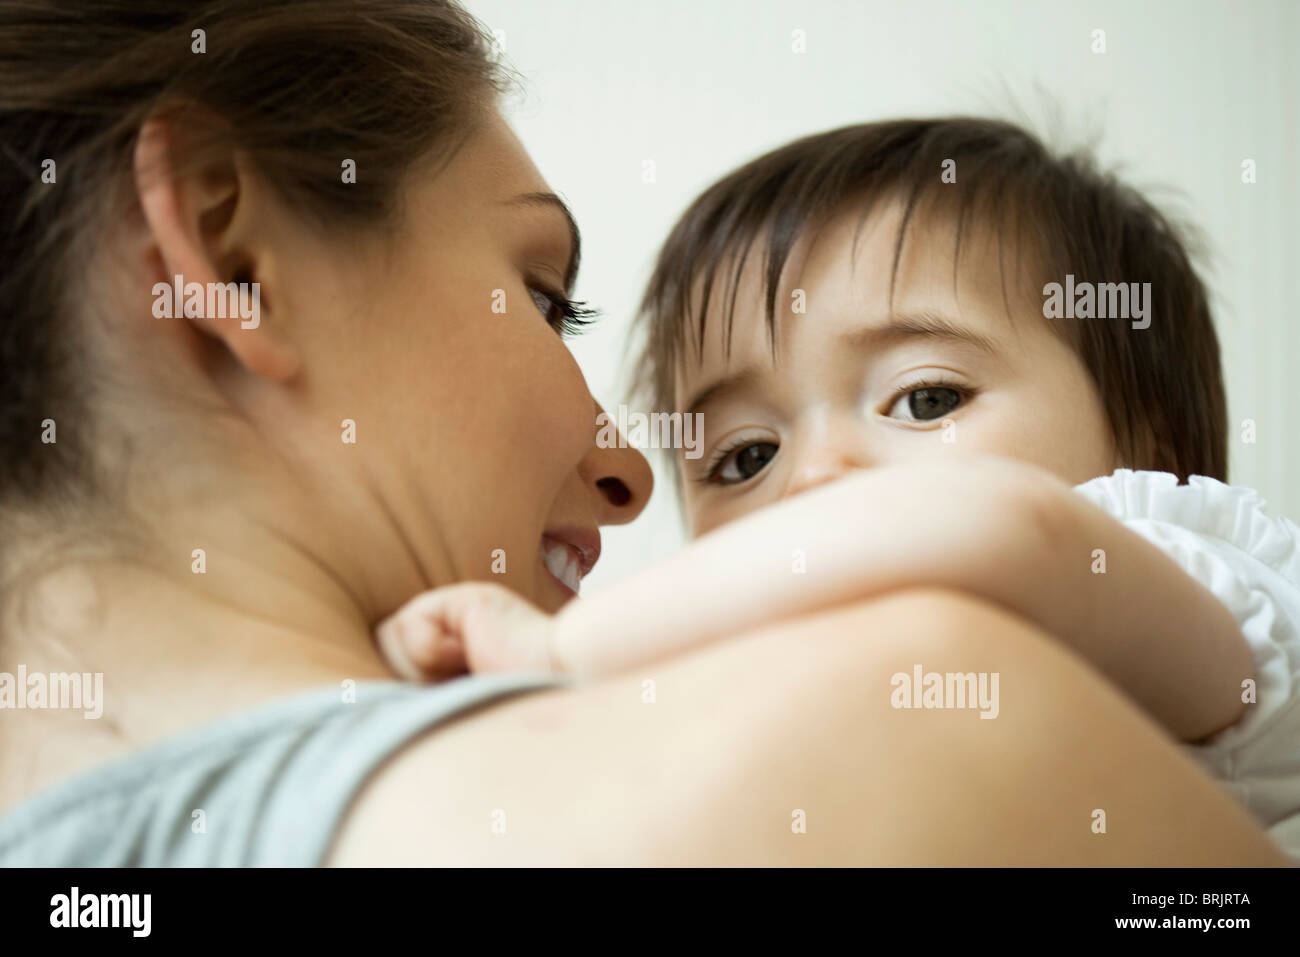 Mother holding baby girl - Stock Image